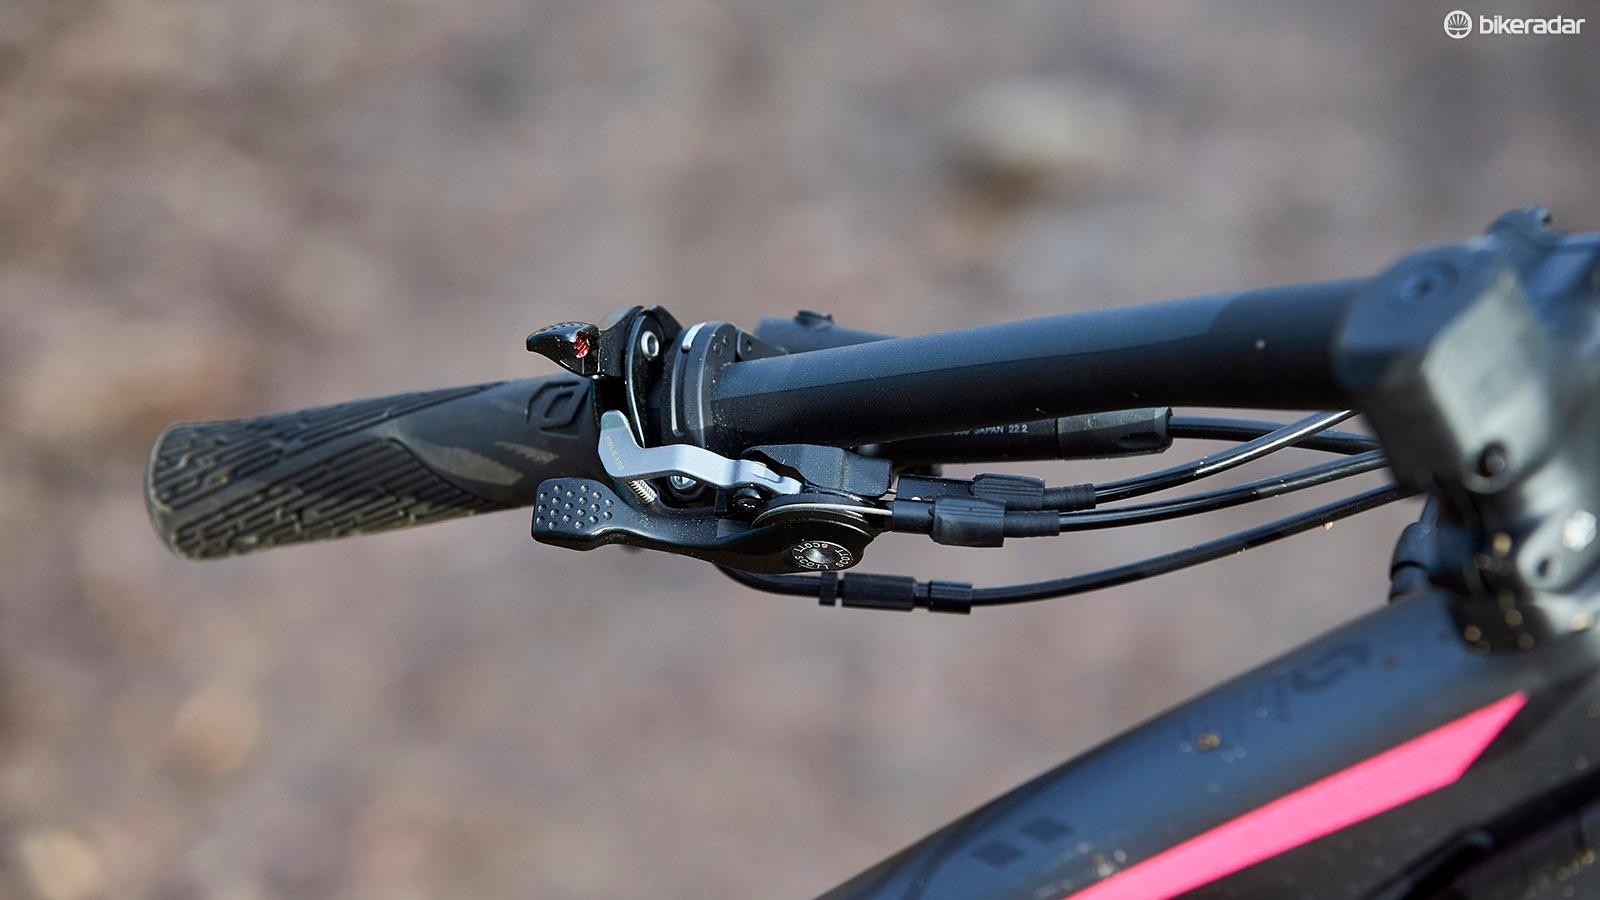 The cockpit feels clutered with both lock-out levers for front and rear travel as well as the dropper control